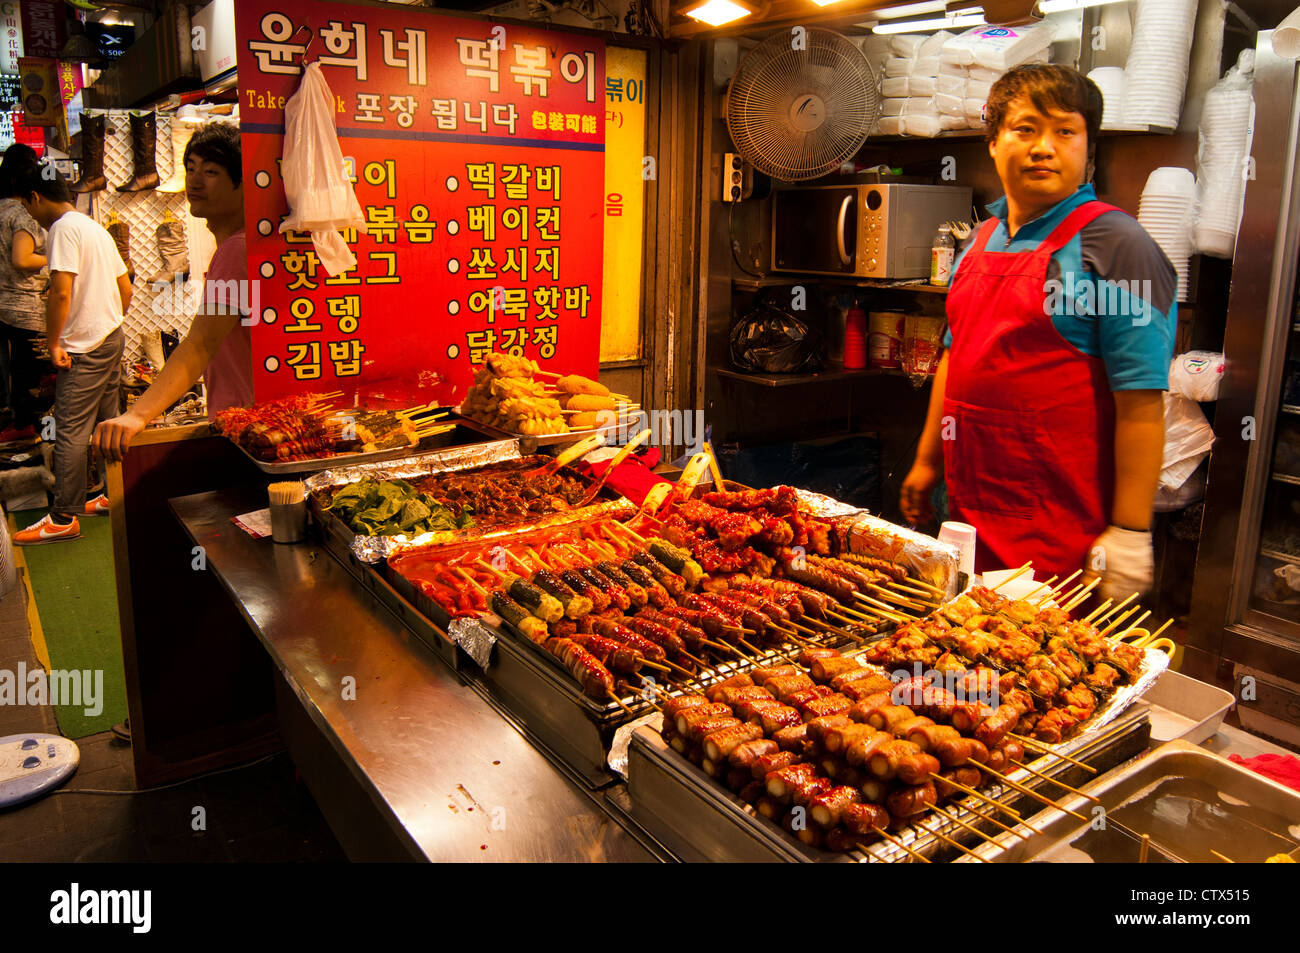 Street food stalls selling various foods and snacks in the ...